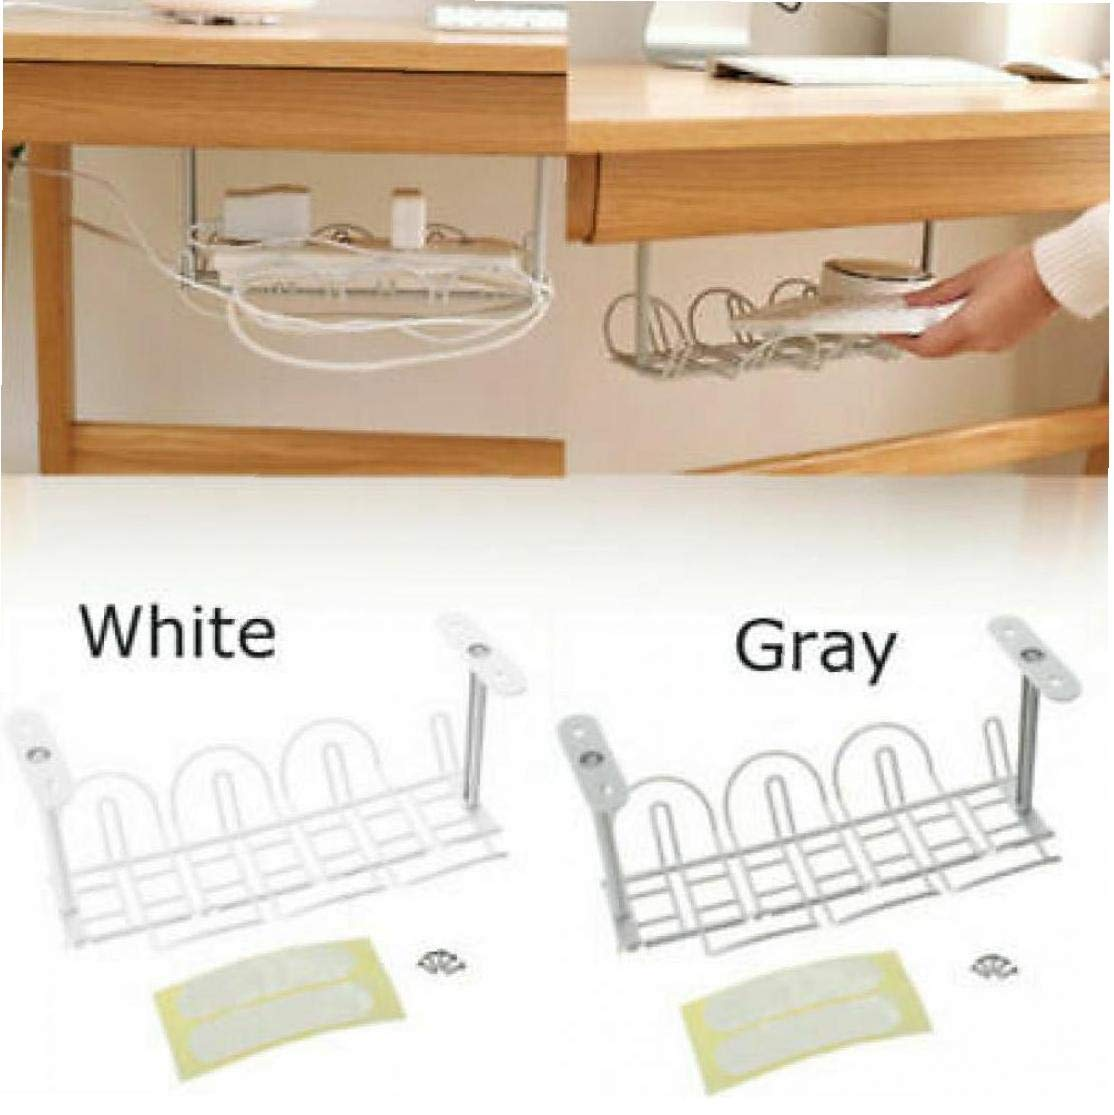 Aisoway Cable Management Tray Under Desk Cable Organizer for Wire  Management Metal Wire Cable Tray for Desks Offices and Kitchens (random  Colors)